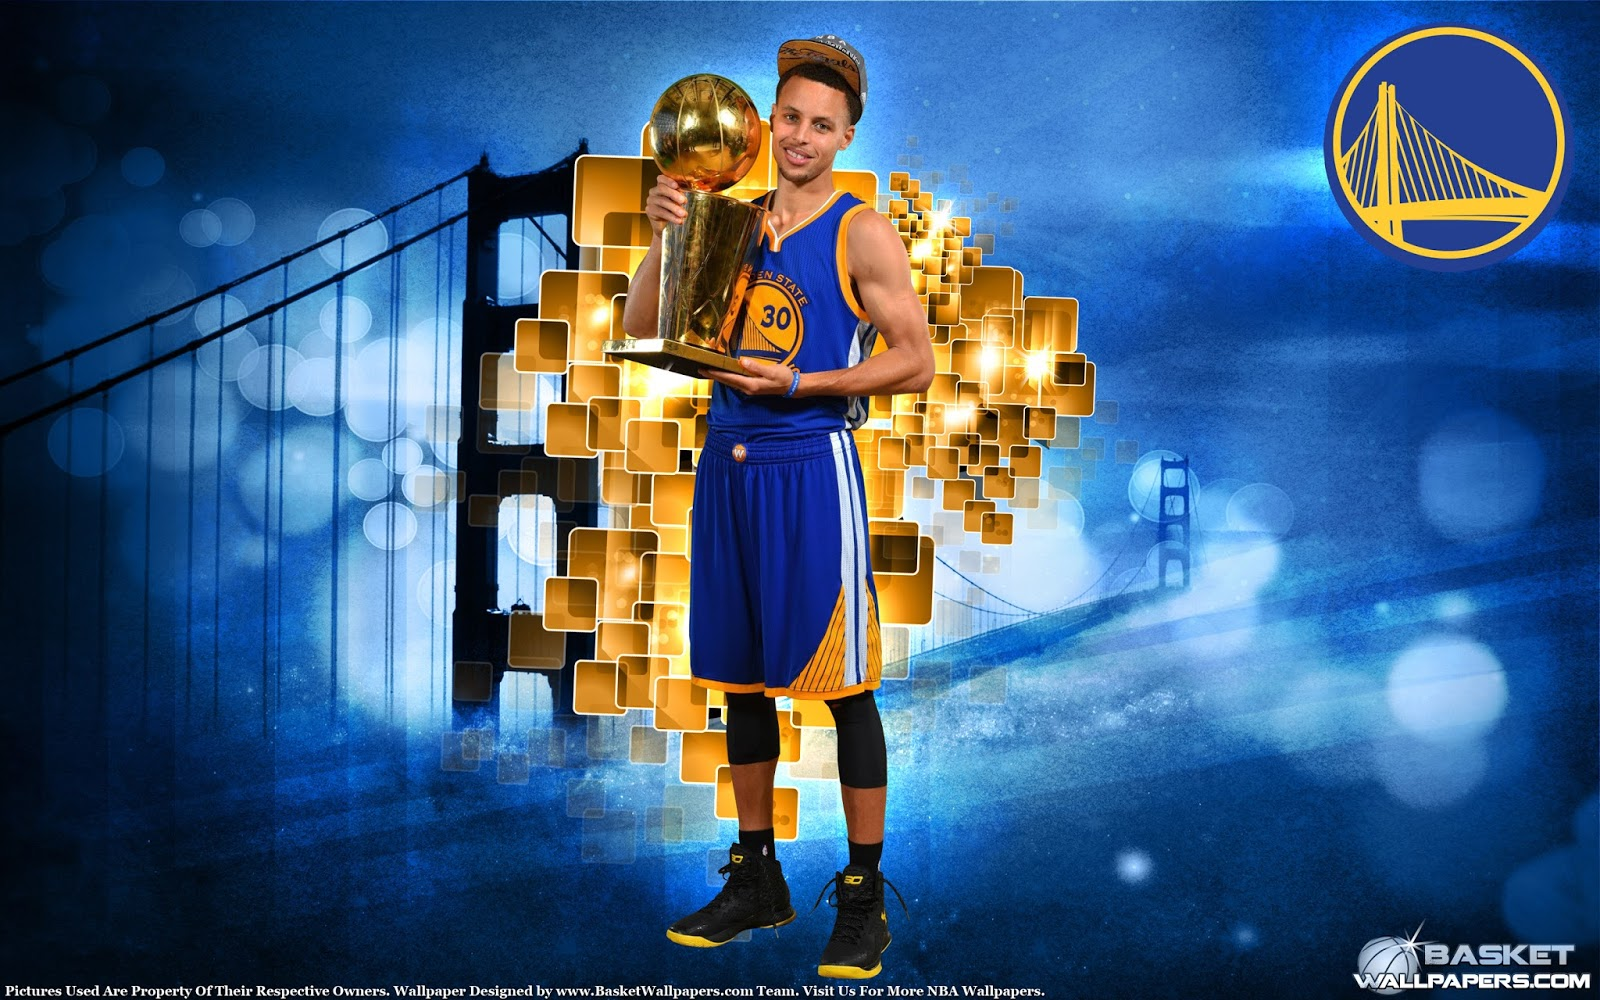 NBA Champion Stephen Curry 2015 Wallpaper